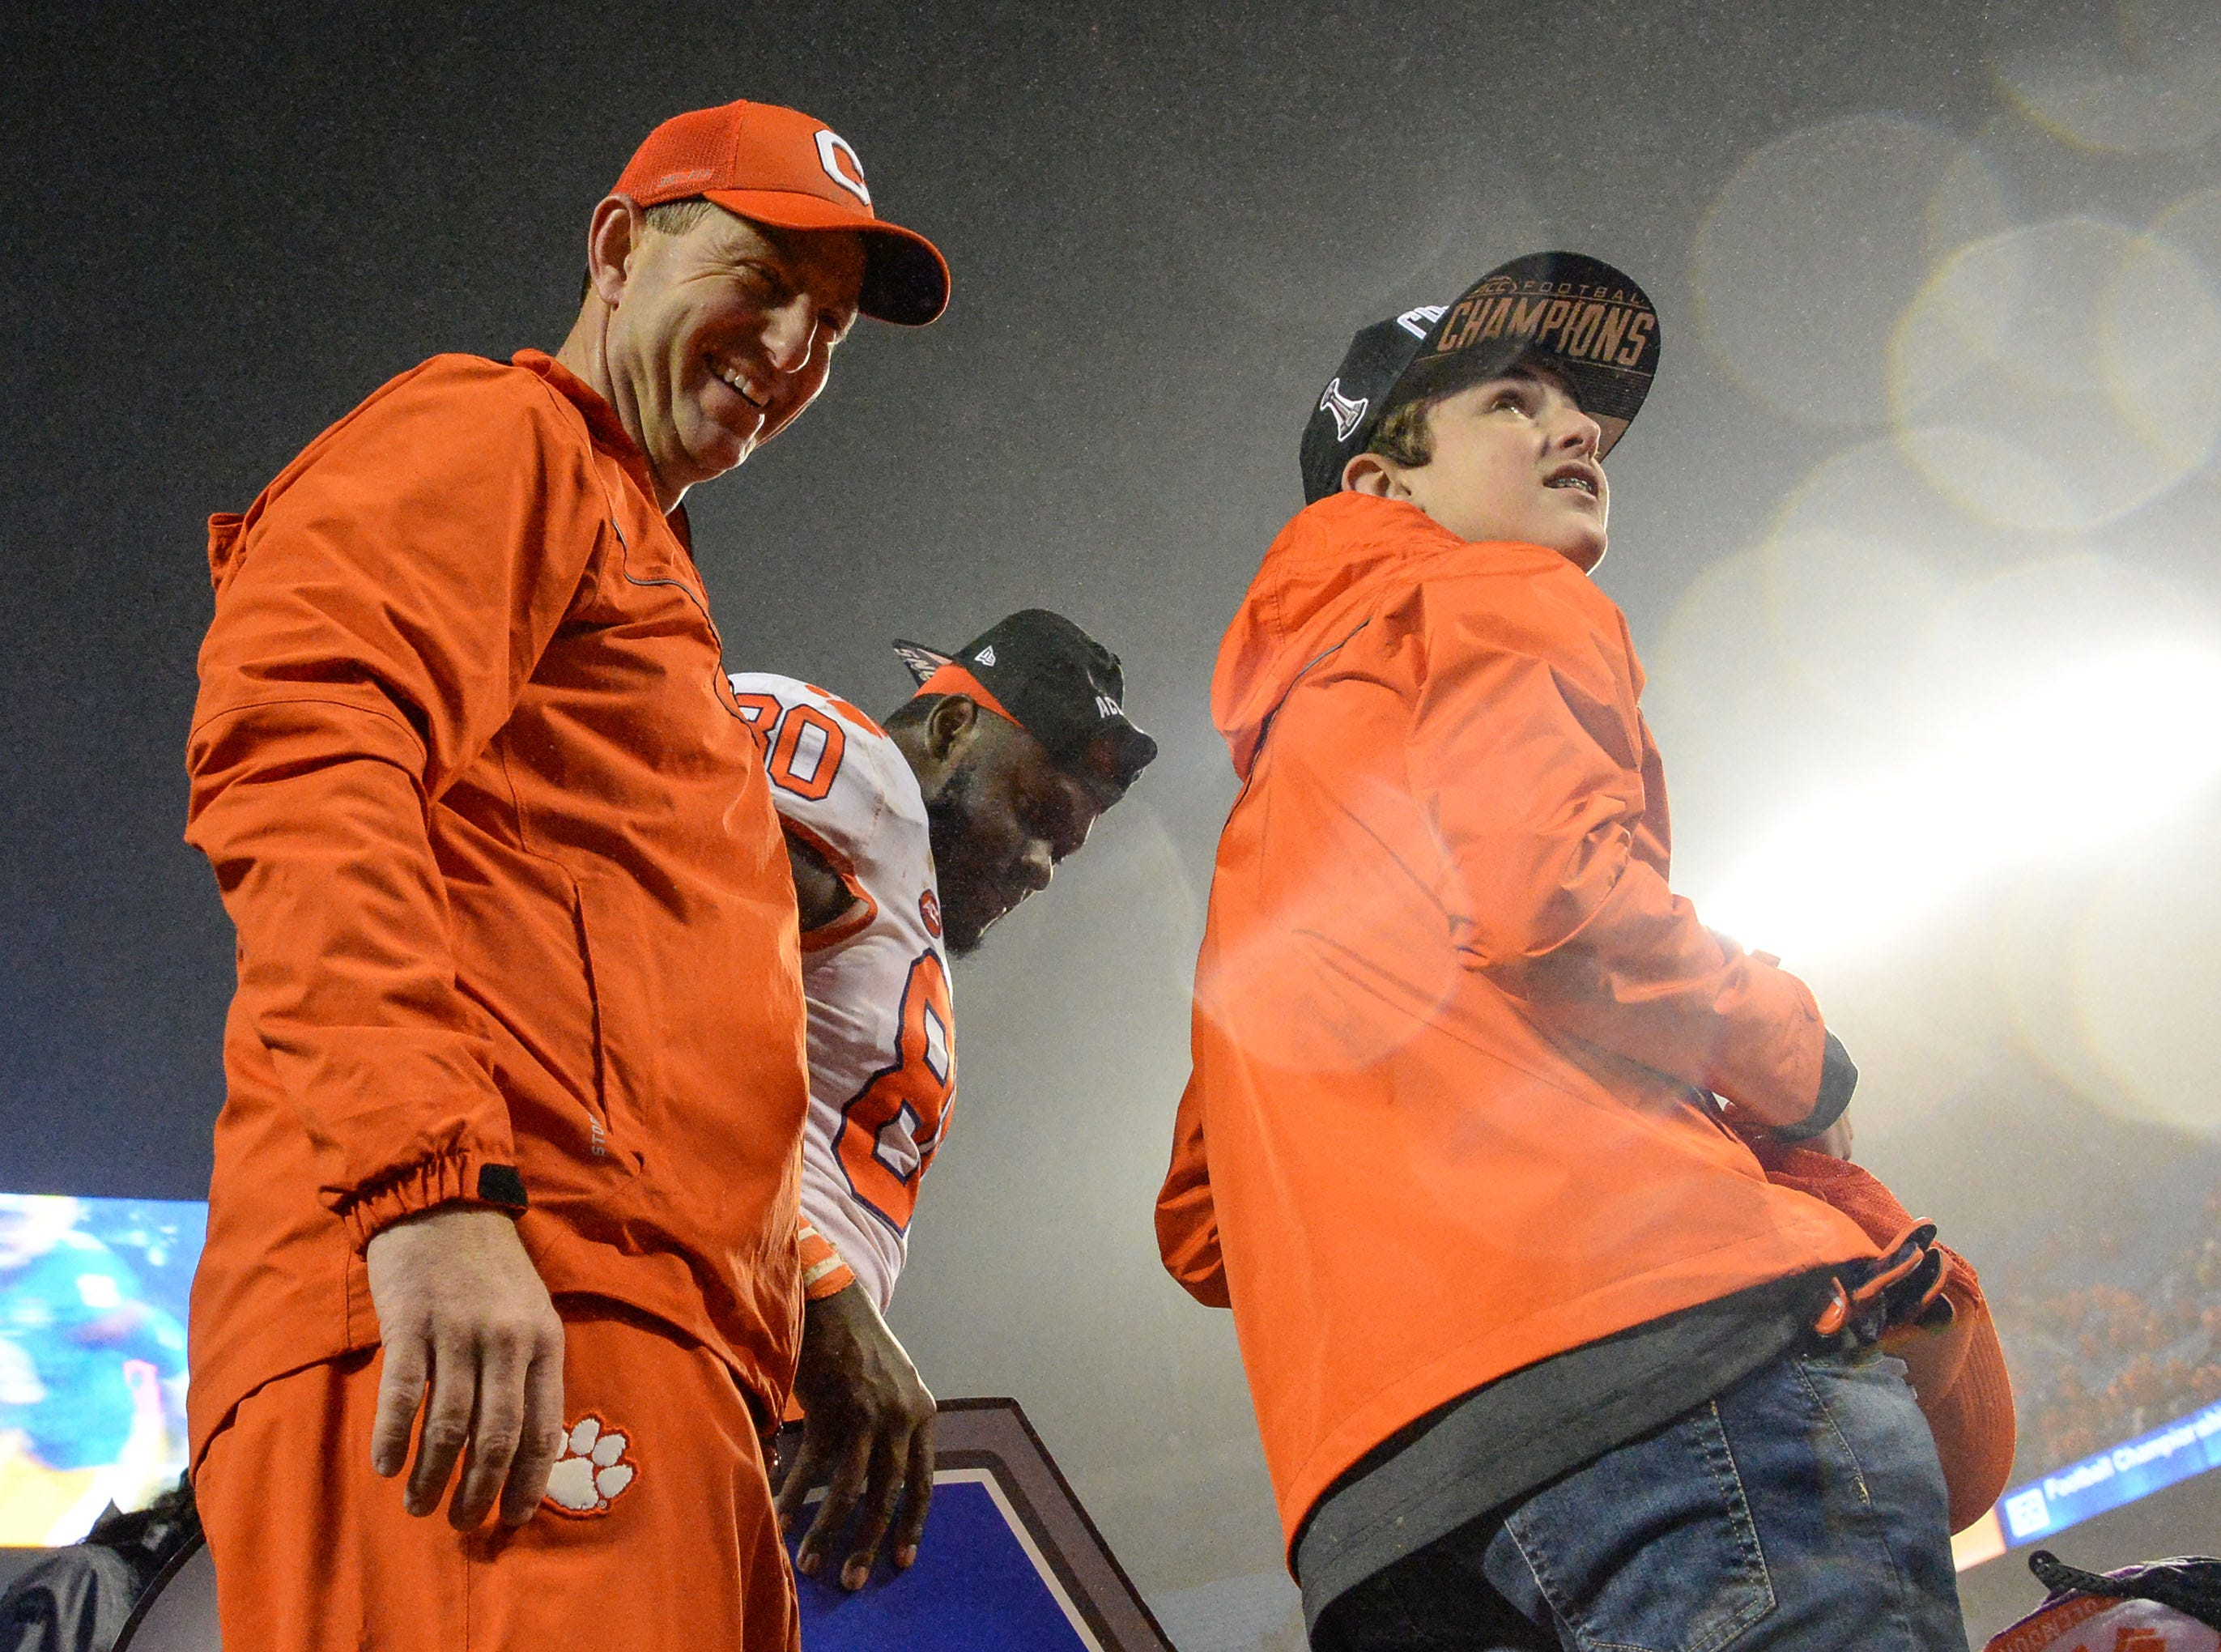 Clemson Head Coach Dabo Swinney and son Clay Swinney join team and fans celebrating a 42-10 win over Pittsburgh after the game at the Dr. Pepper ACC football championship at Bank of America Stadium in Charlotte, N.C. on Saturday, December 1, 2018.